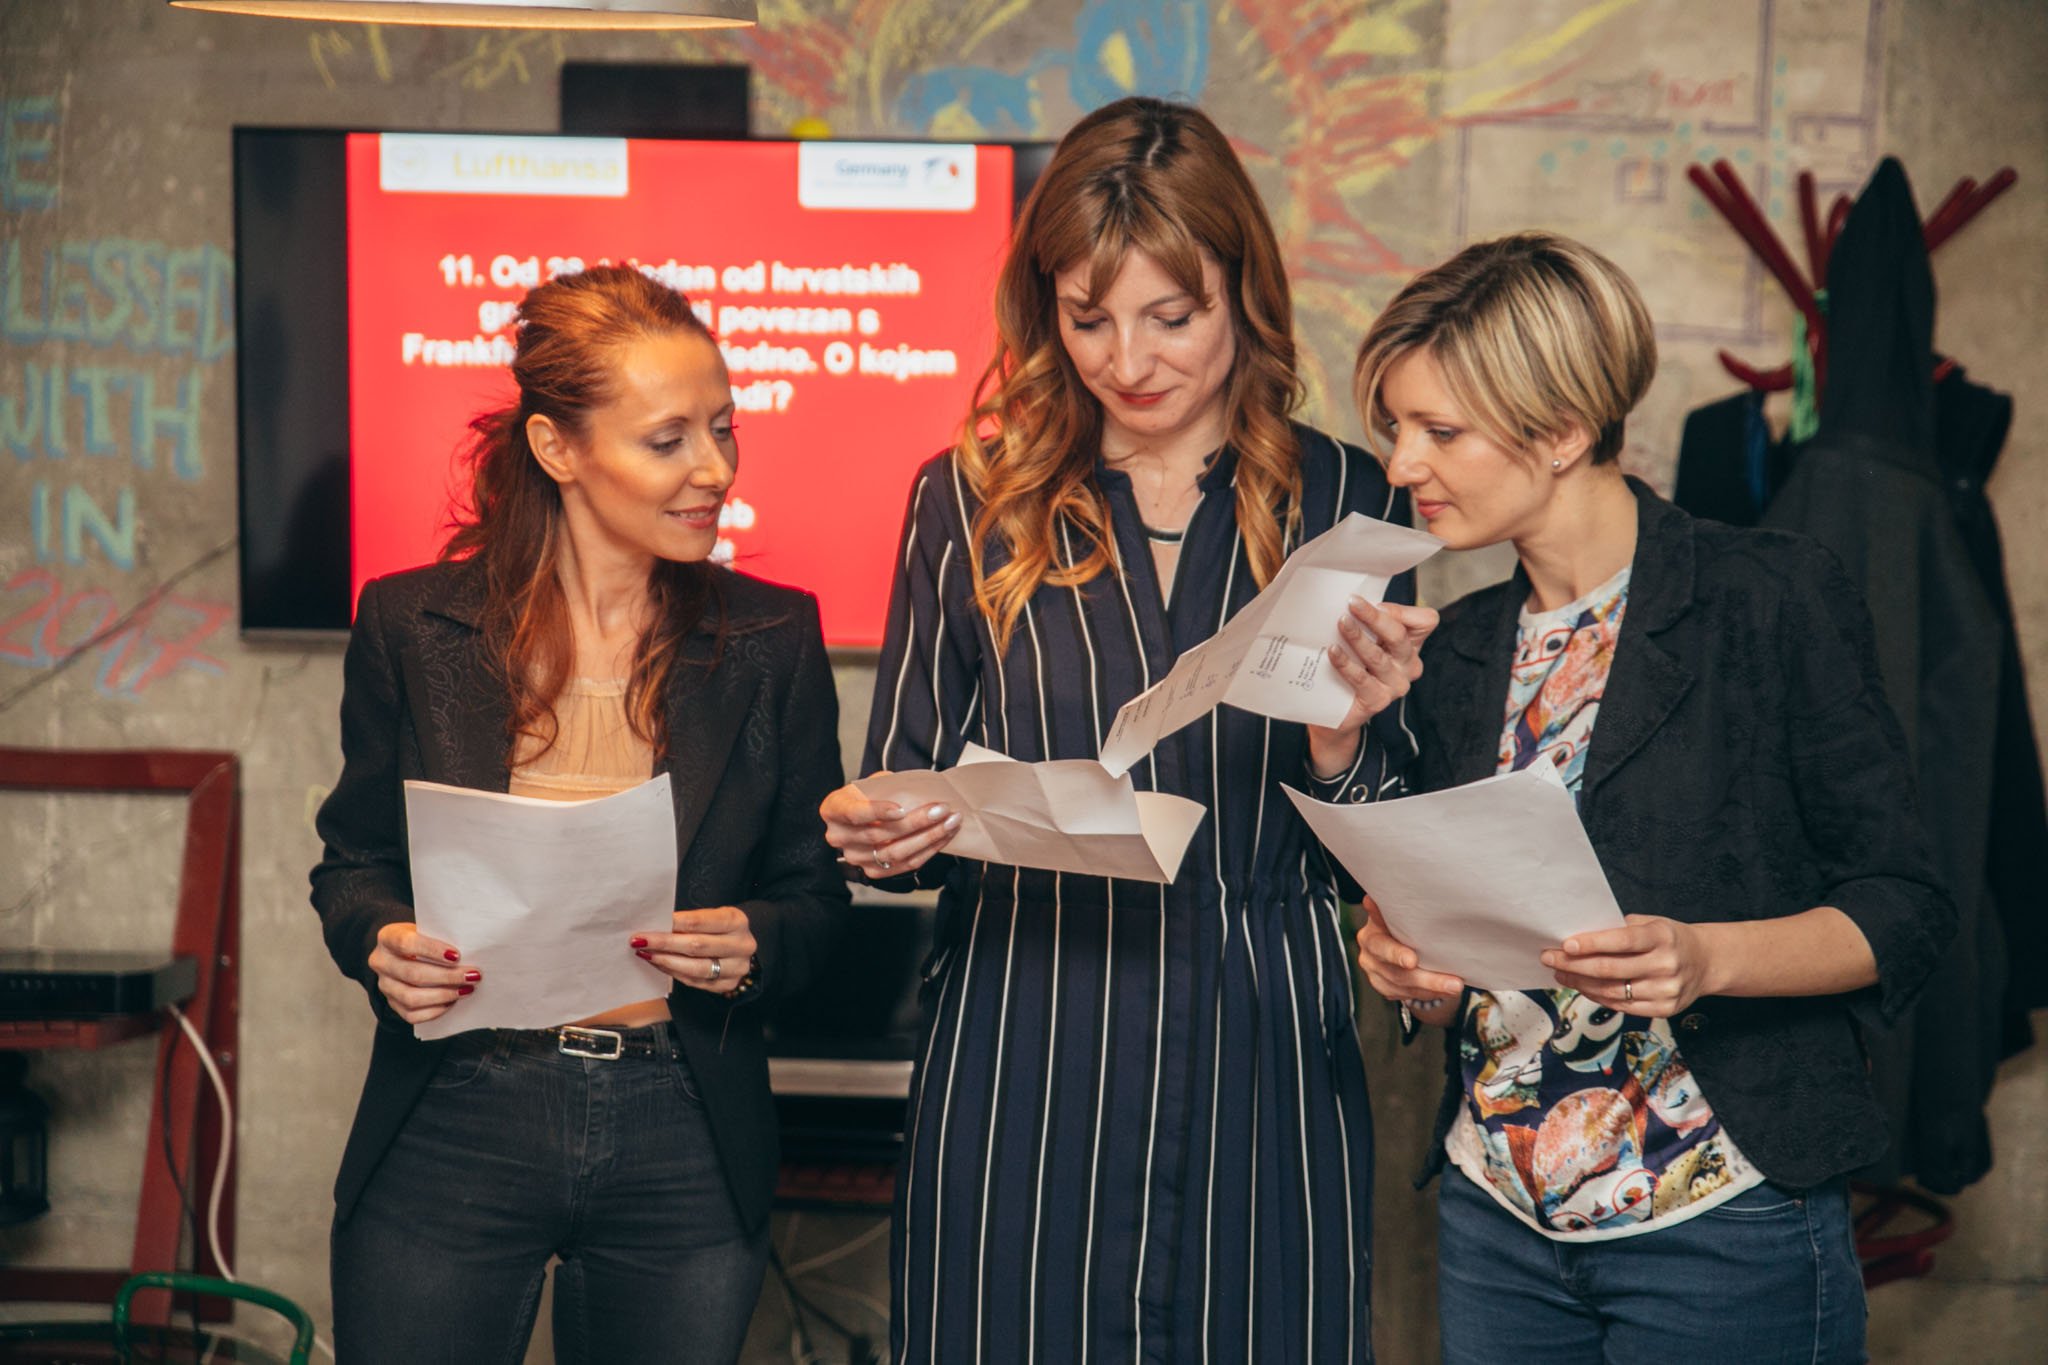 Germany Travel and Lufthansa joinz promotional activities in Zagreb